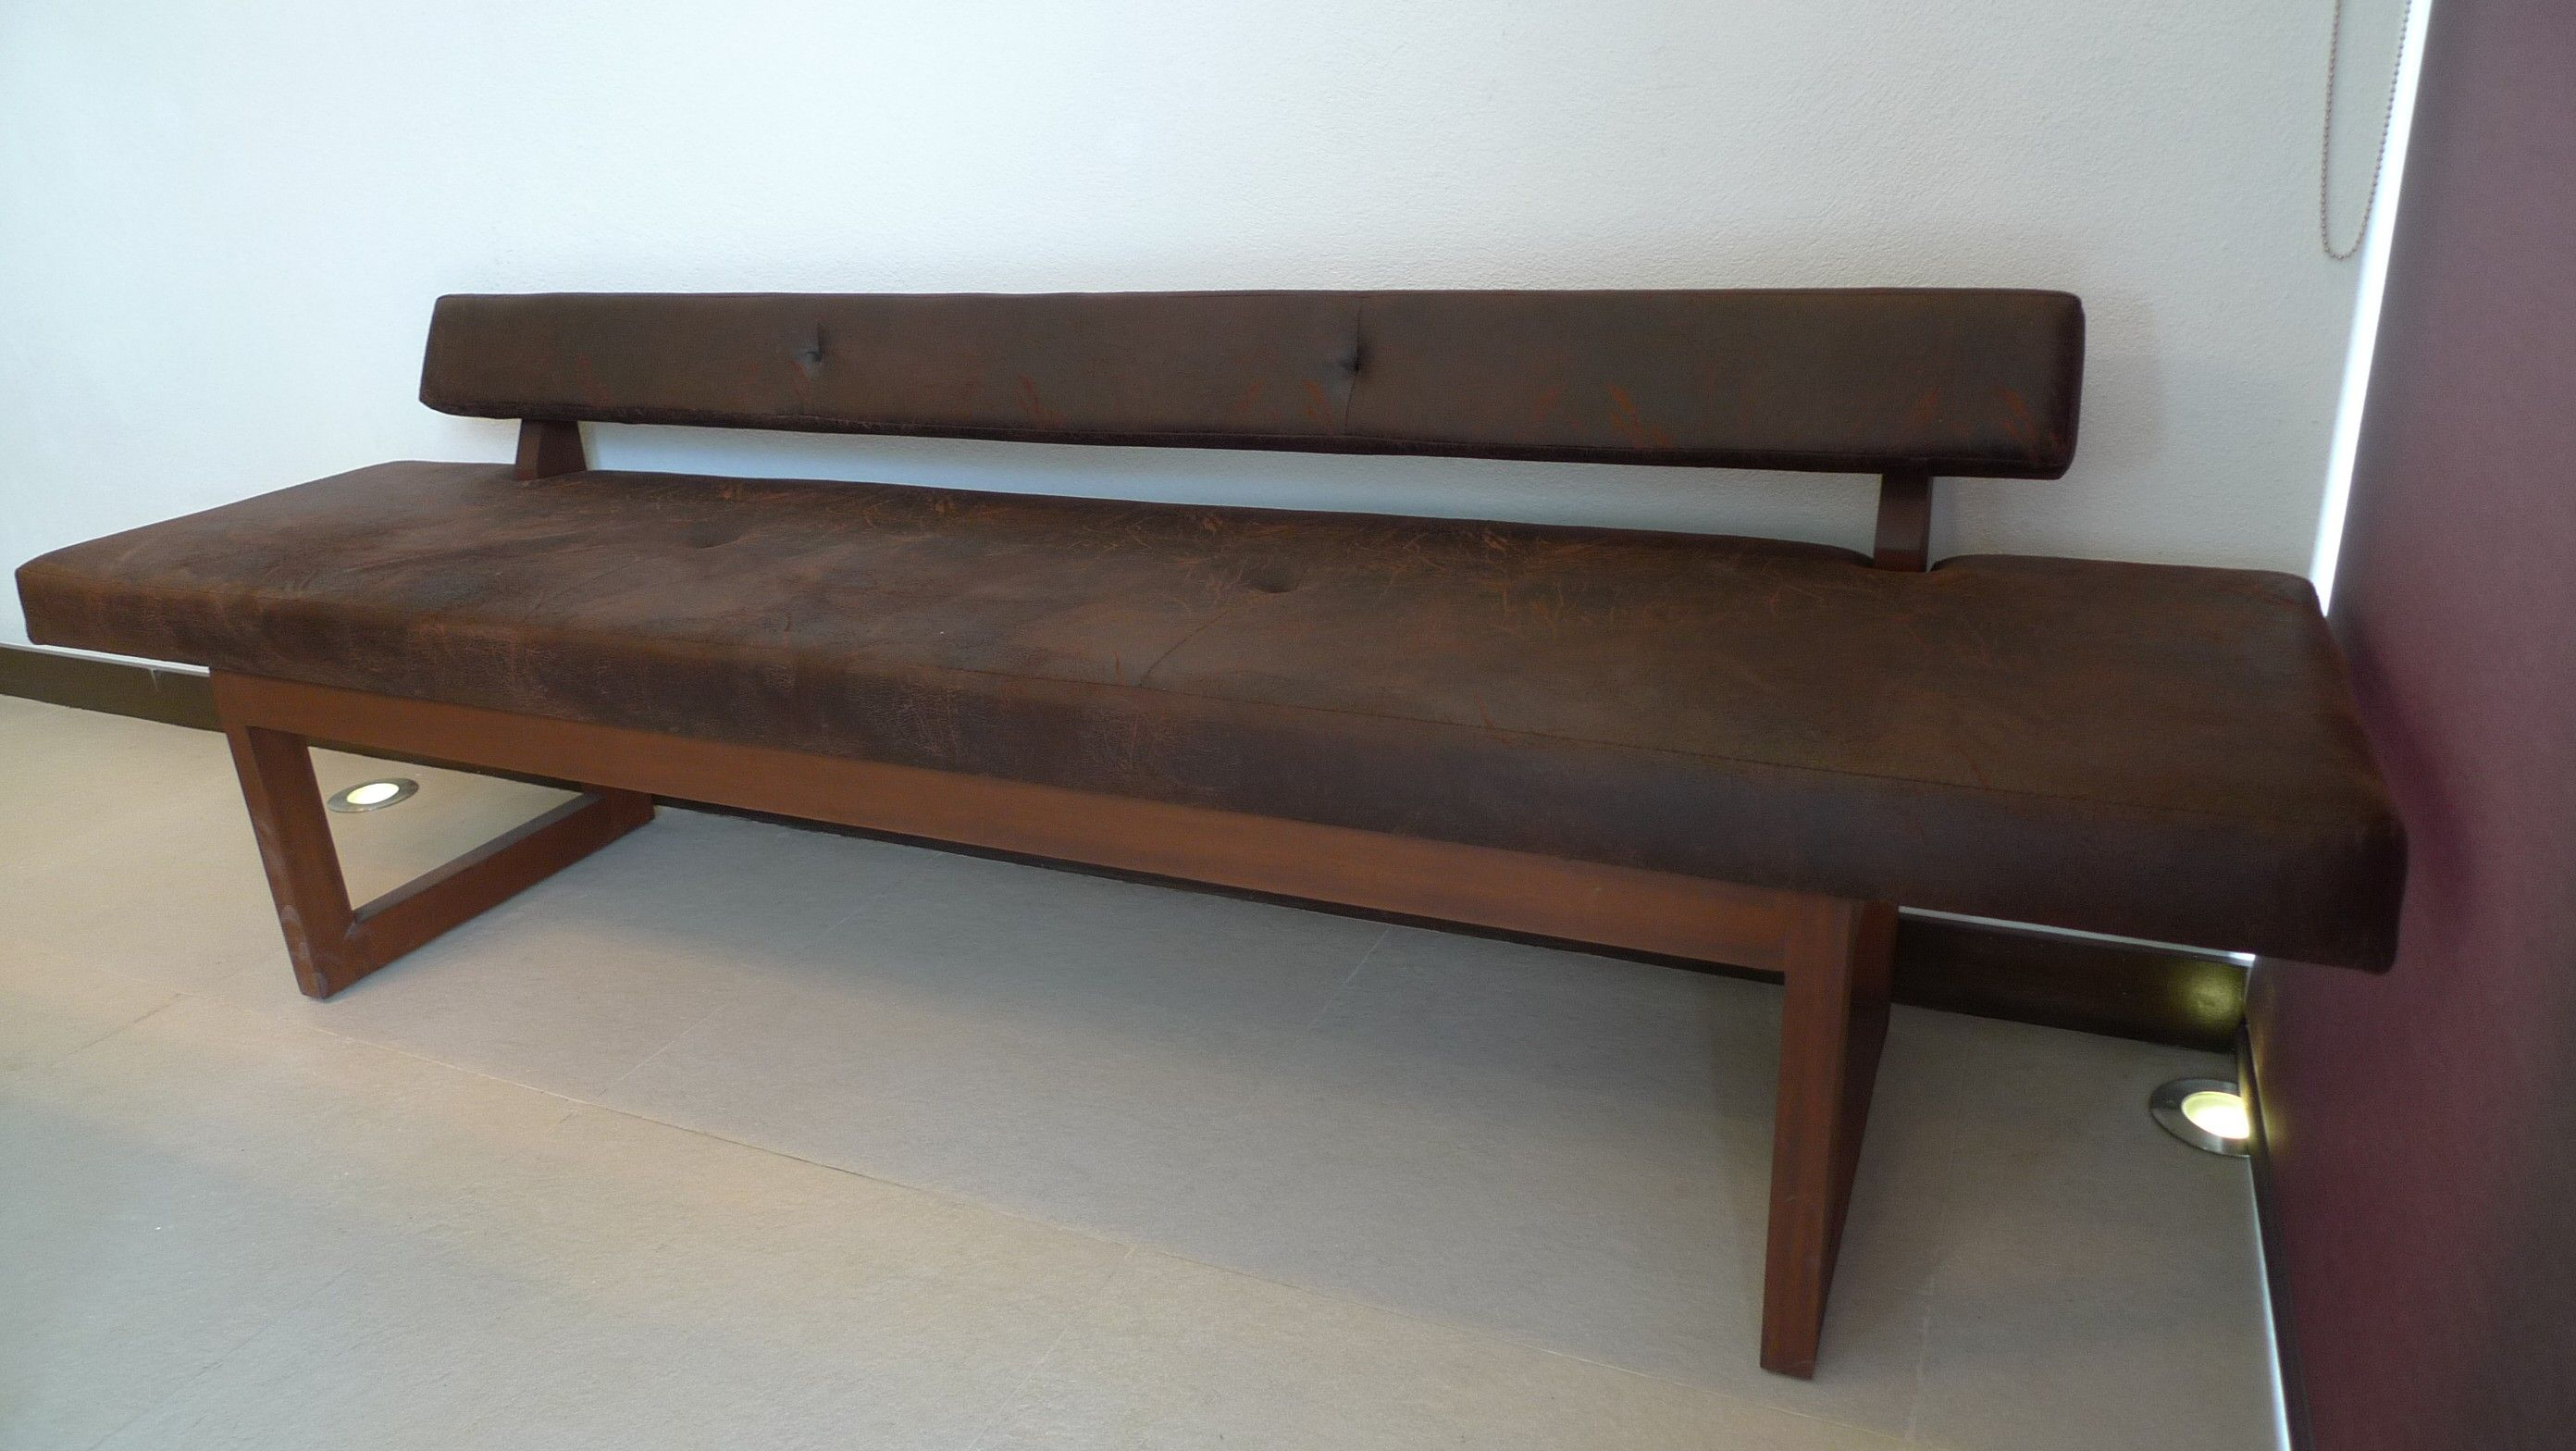 Brown Wooden Dining Bench With Dark Brown Seat And Back Combined With Two Legs Placed On T Upholstered Dining Bench Dining Bench With Back Wooden Dining Bench